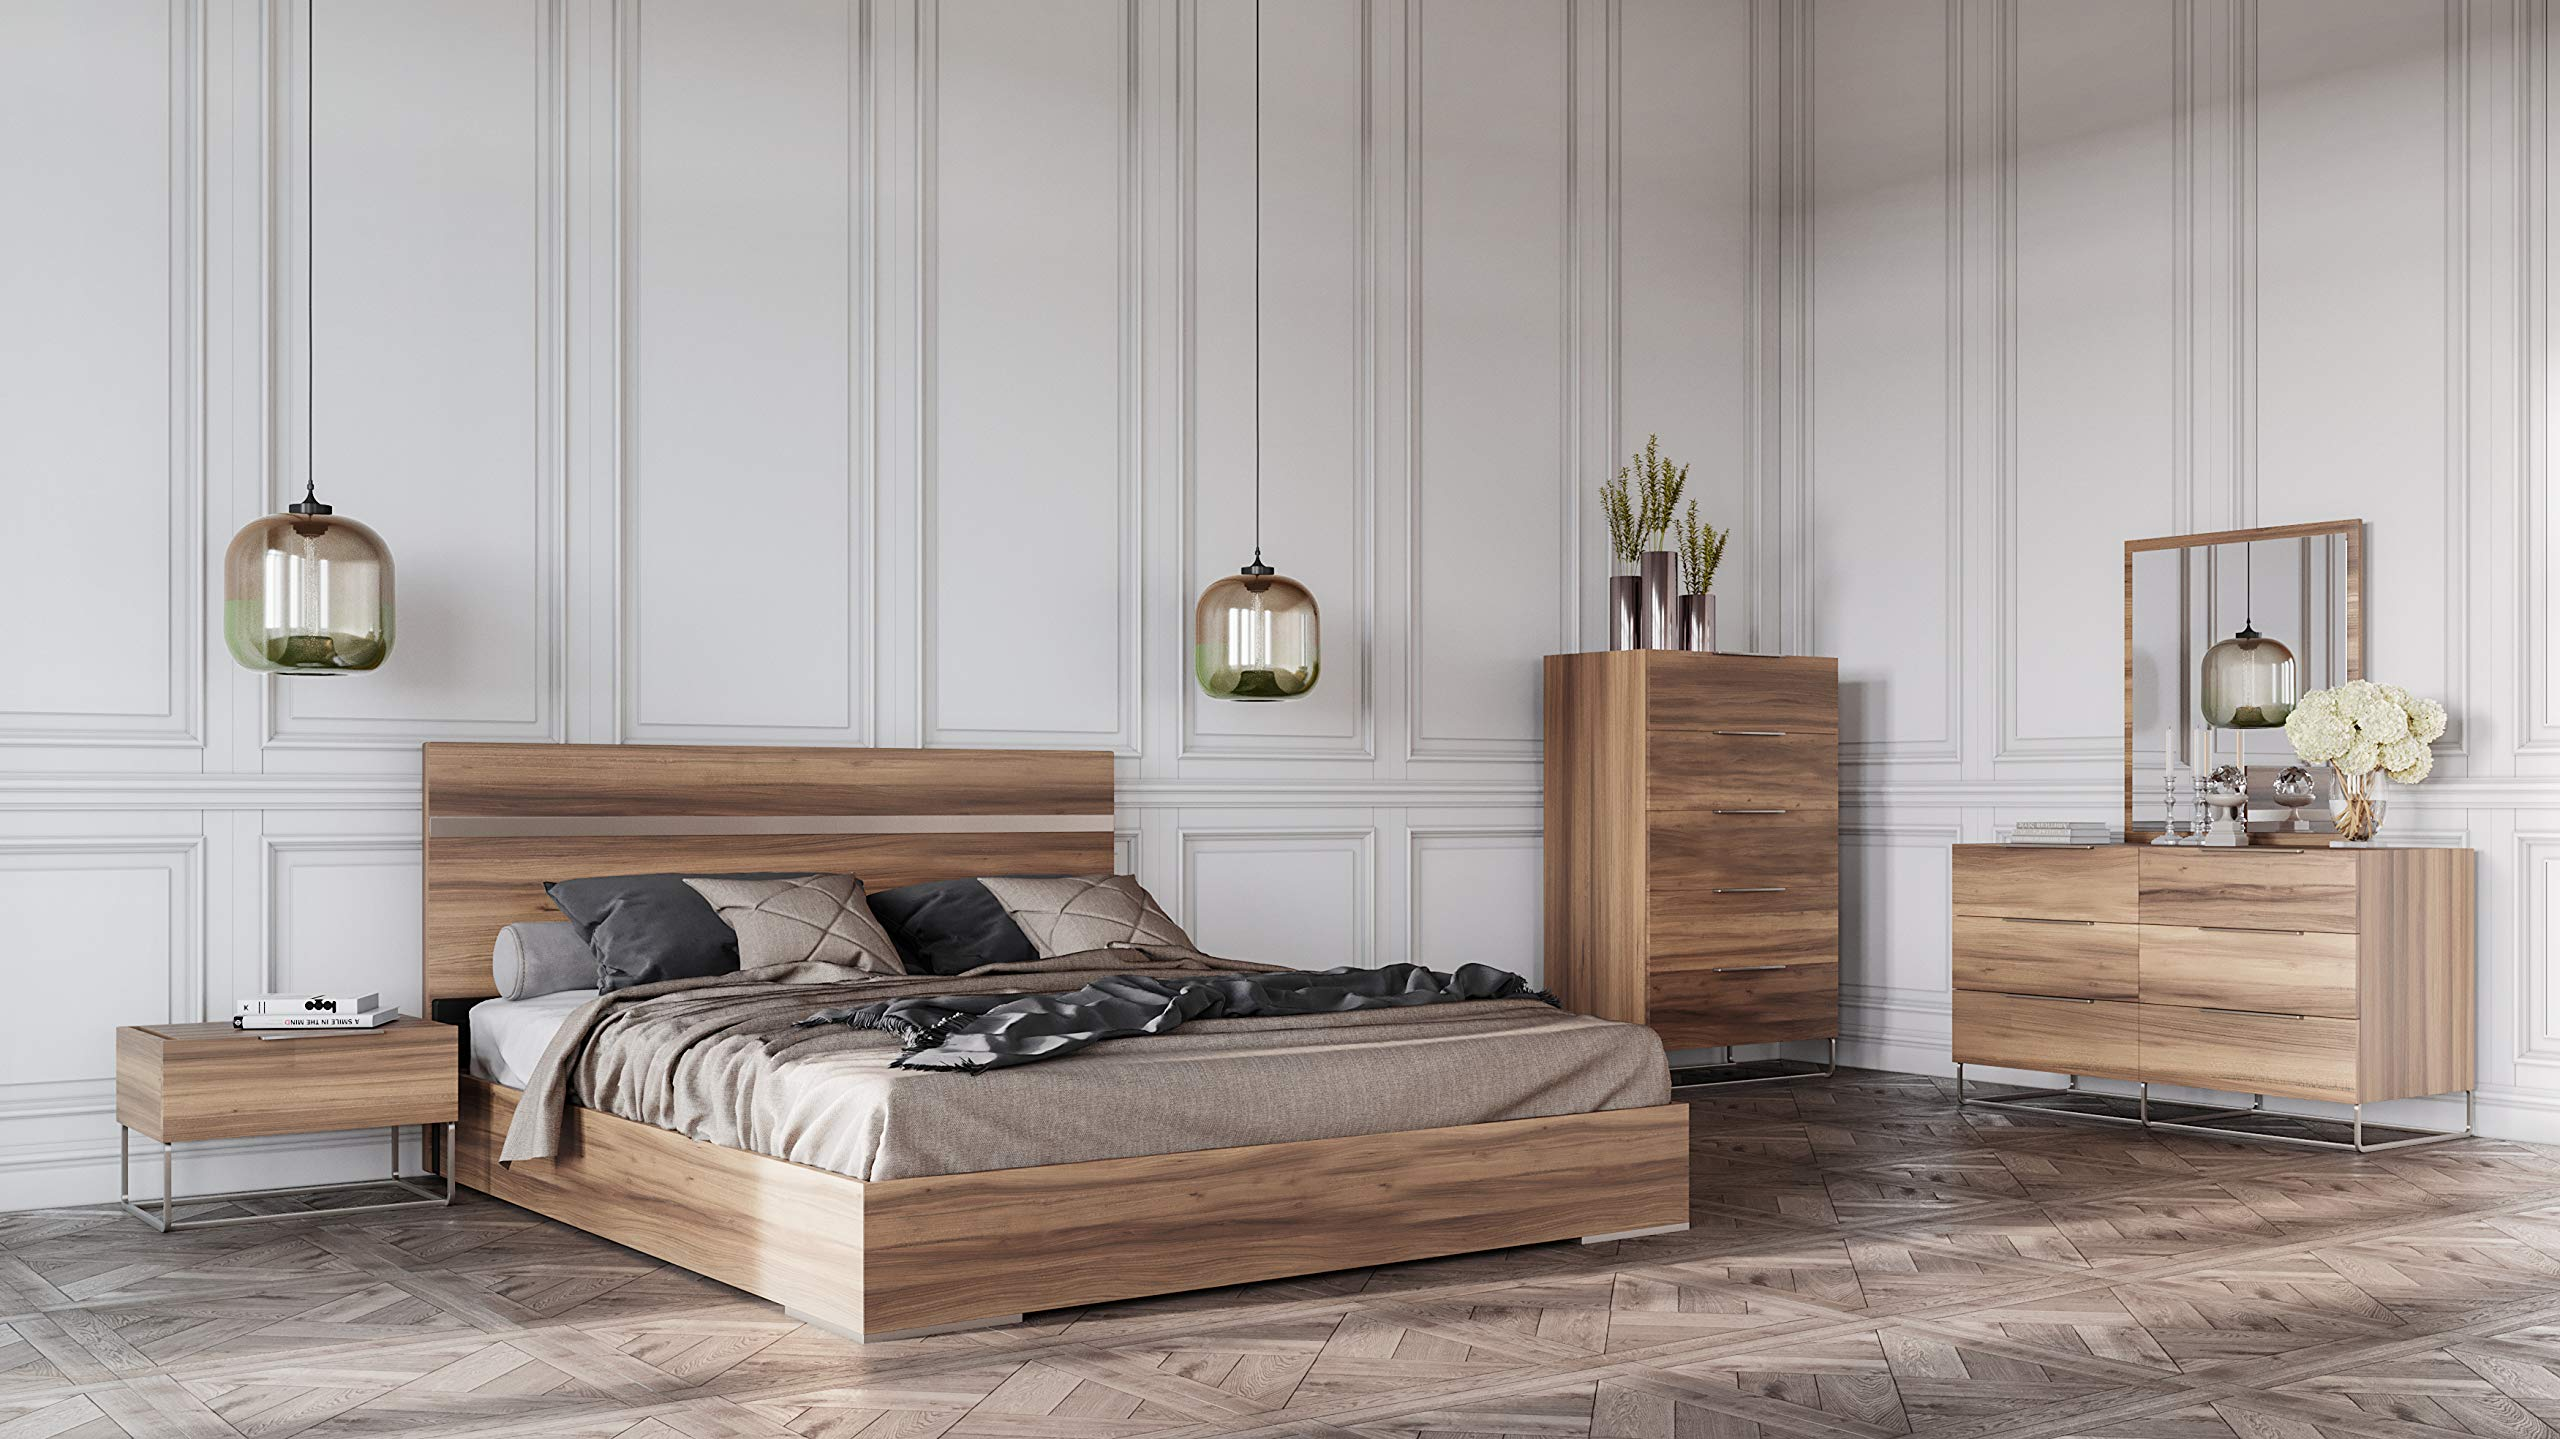 Mirror 5-Piece Bedroom Set Dresser Eastern King Walnut 2 Nightstands Limari Home Alonzo Collection Modern Style Italian Crafted Laminate Bed